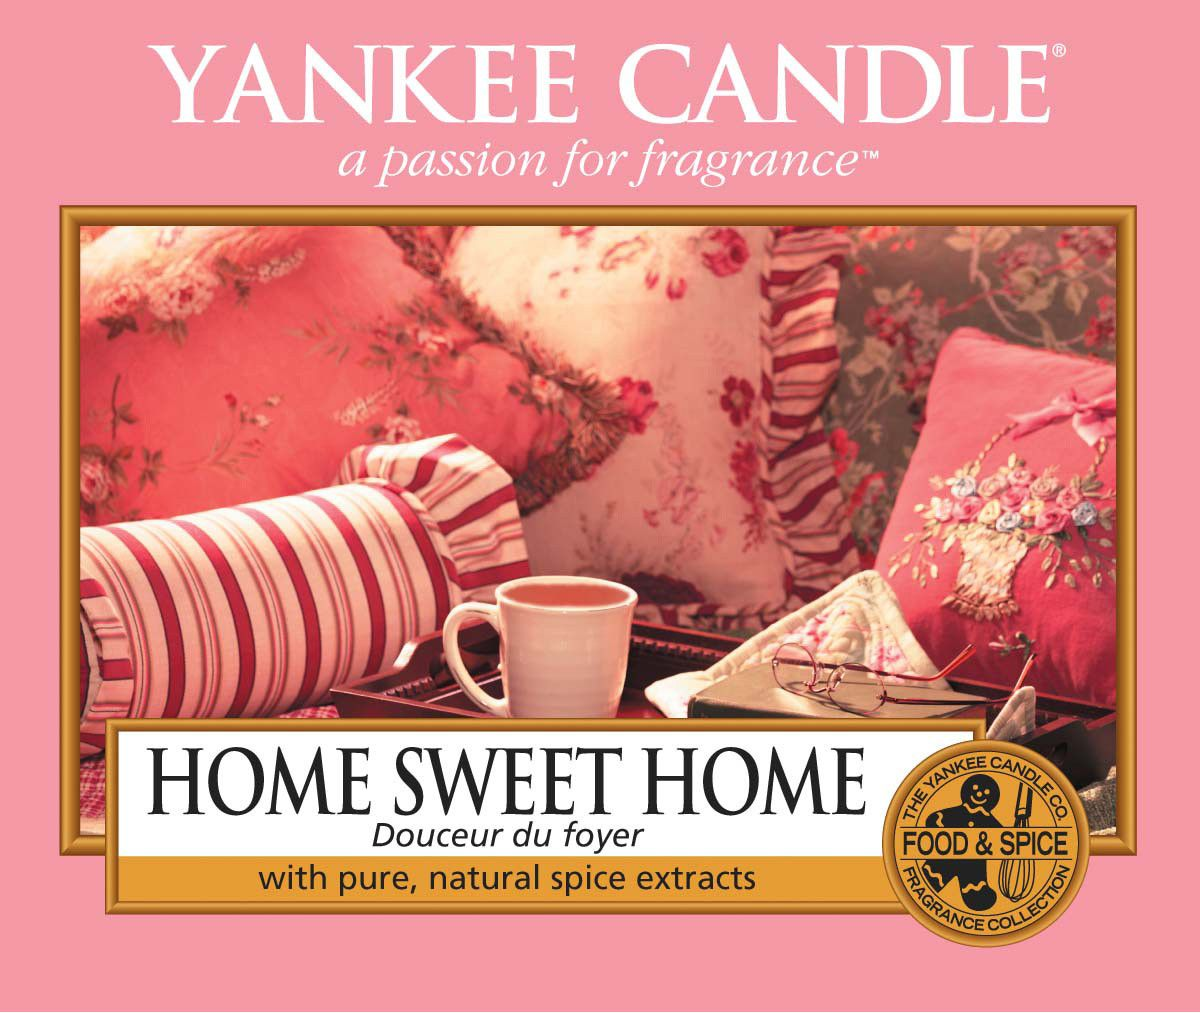 Yankee Candle Country Kitchen Home Sweet Home Yankee Candle Printies Mini Yankee Candles